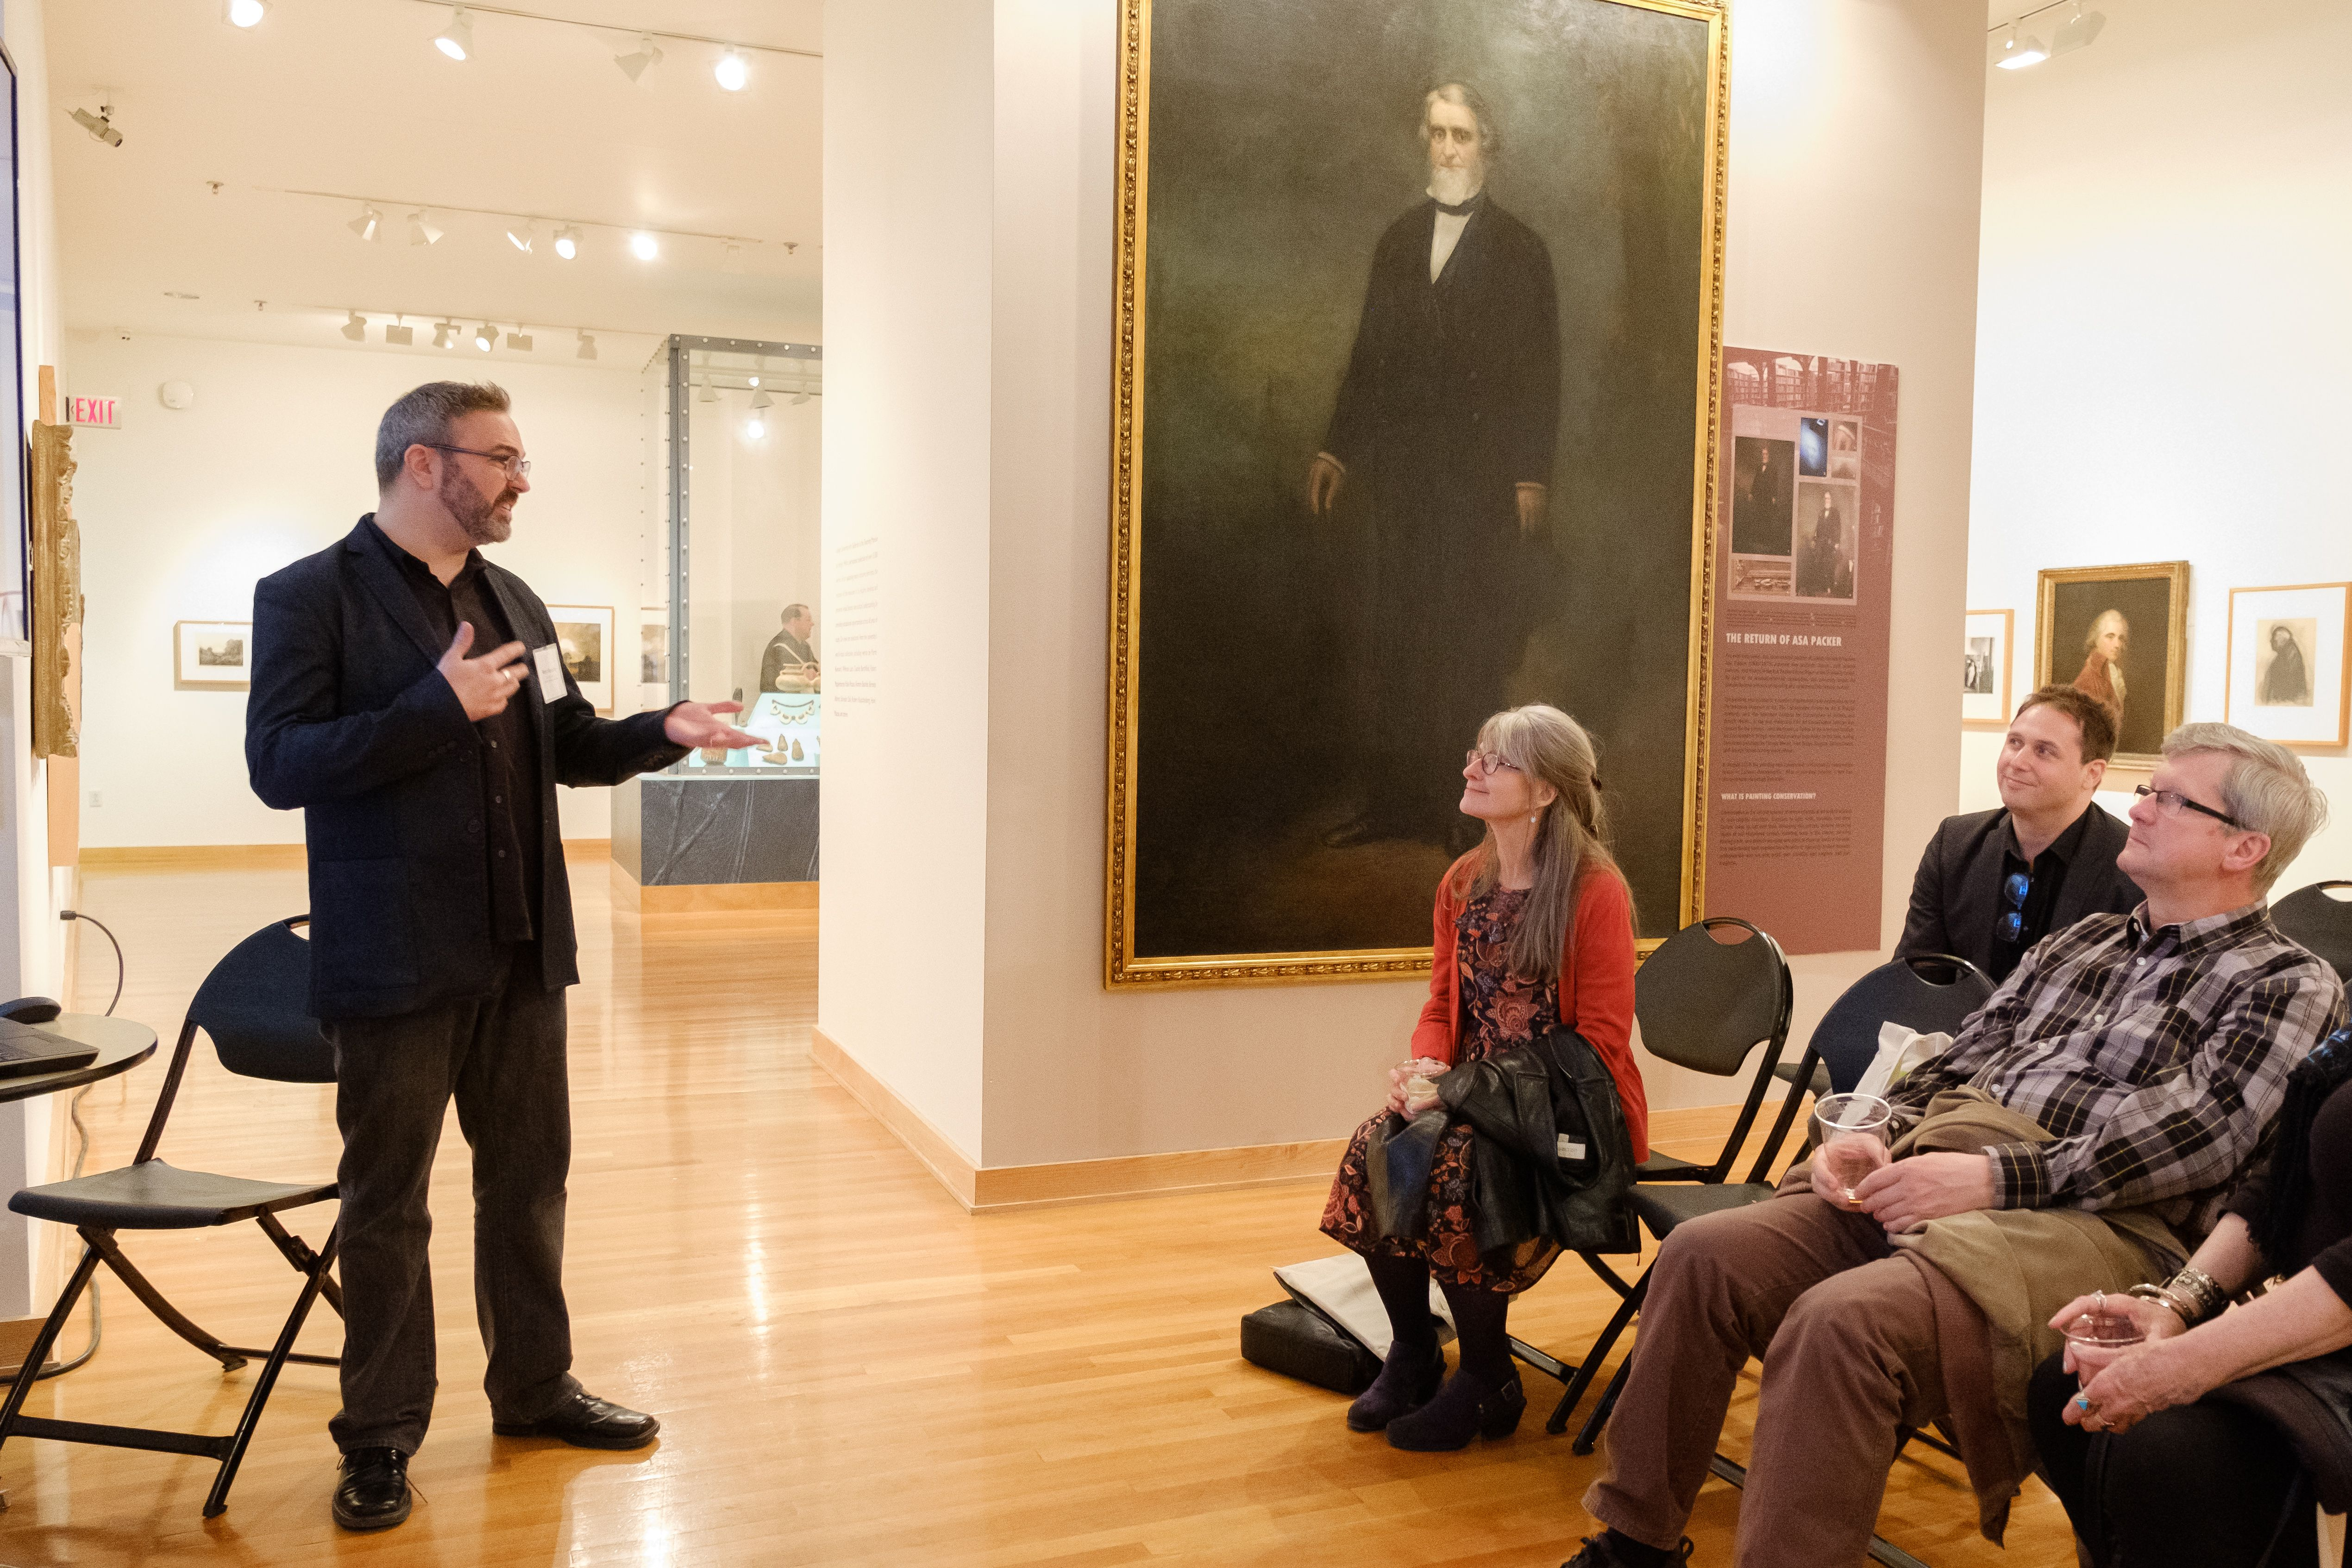 MOMA reference video entitled Five Tips for Teaching with Works of Art